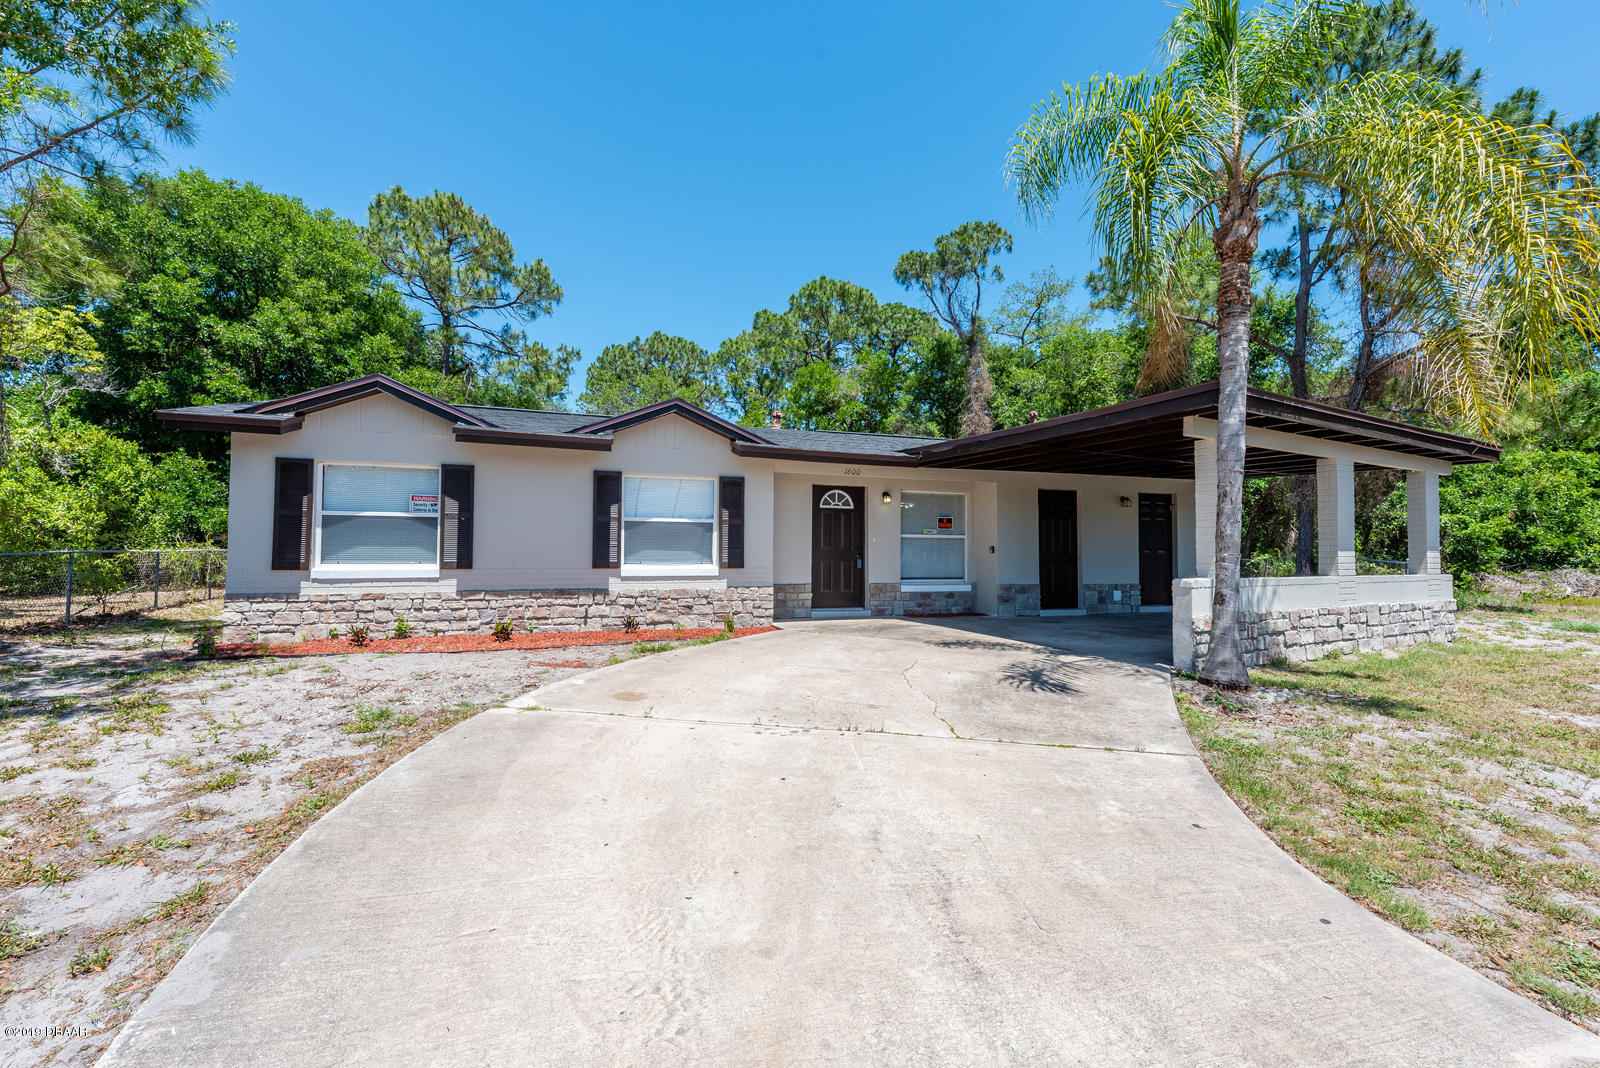 1600 Stocking Street, Holly Hill, Florida